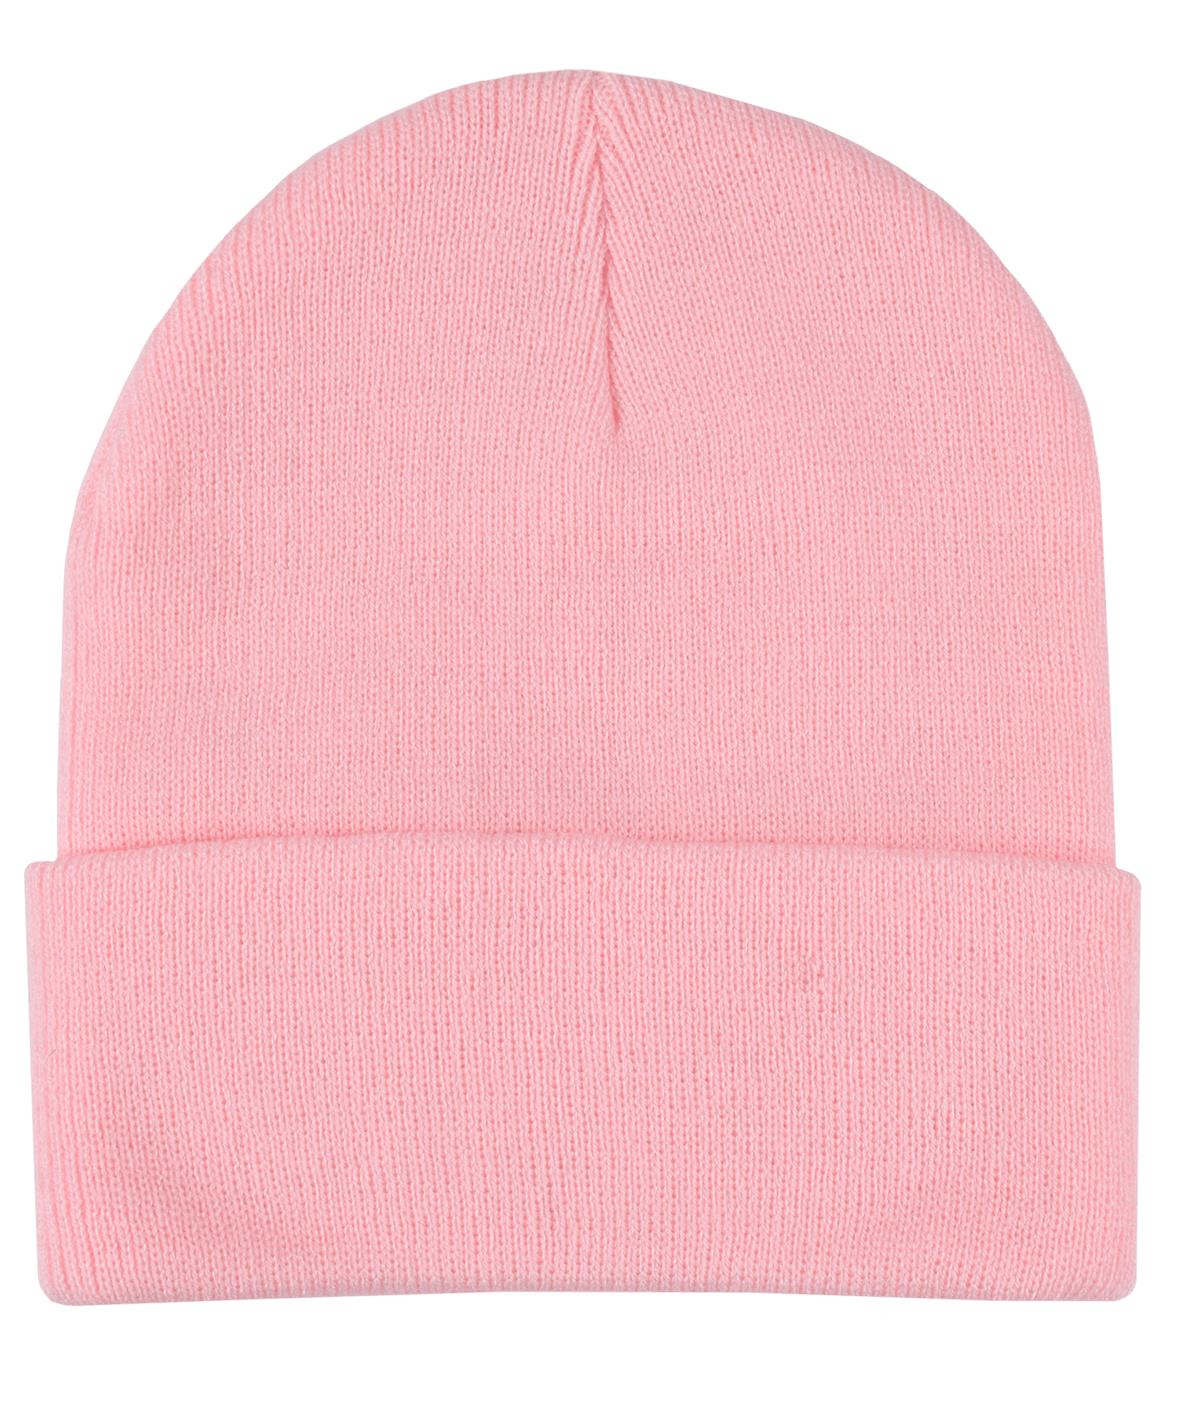 Chassé Customizable Beanie